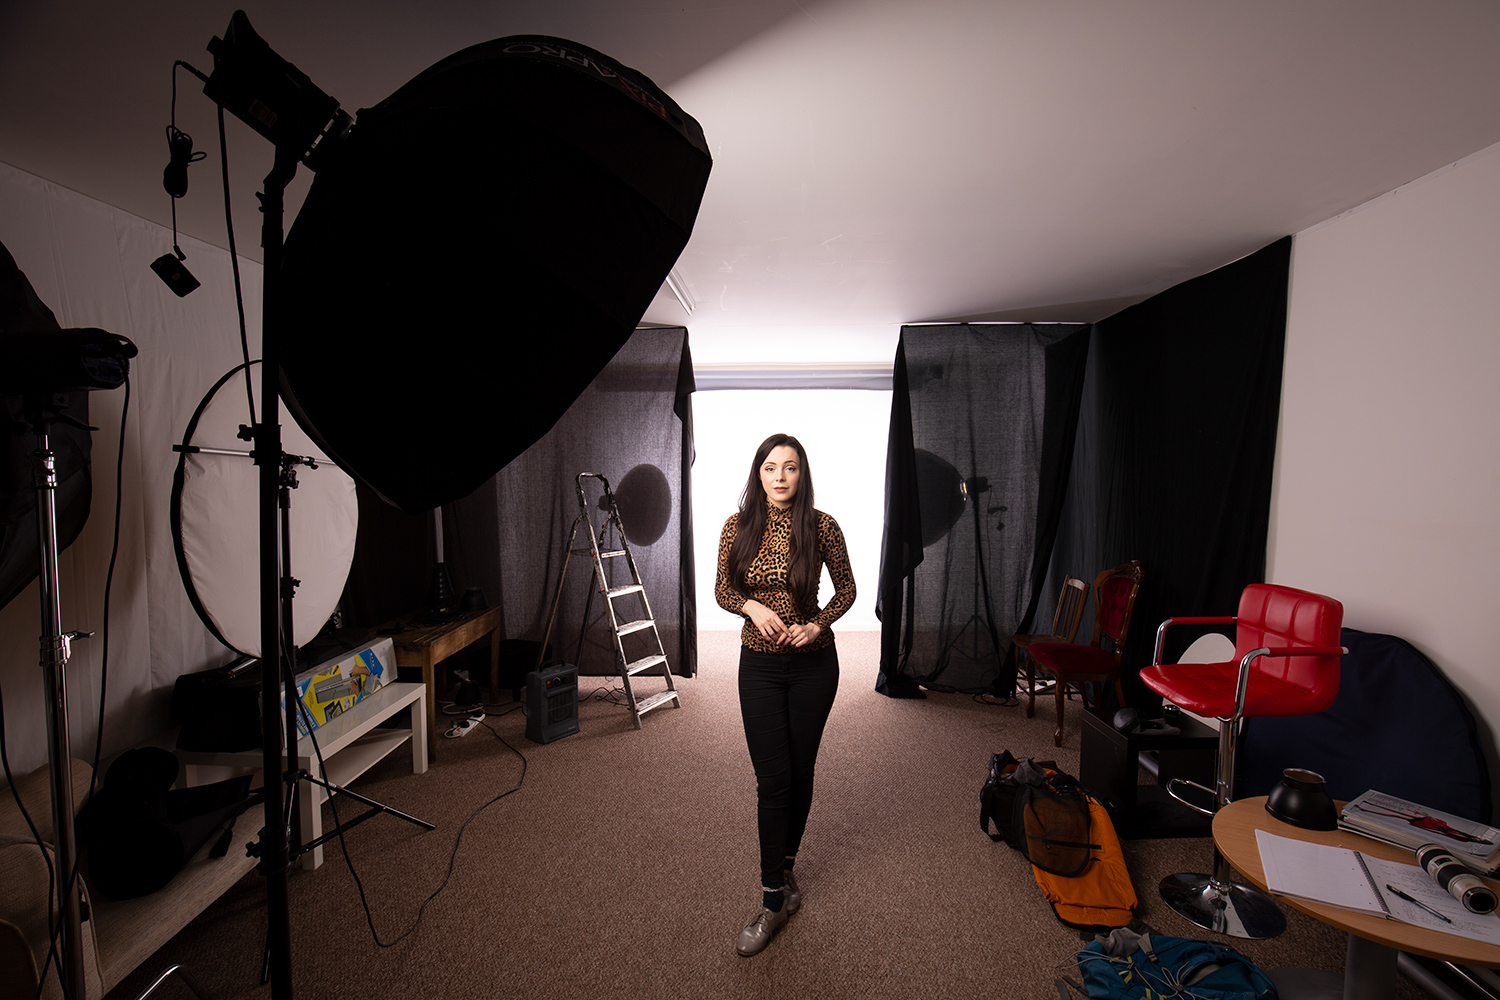 Image: Once the background lights are done, you can light your subject in any way you want.